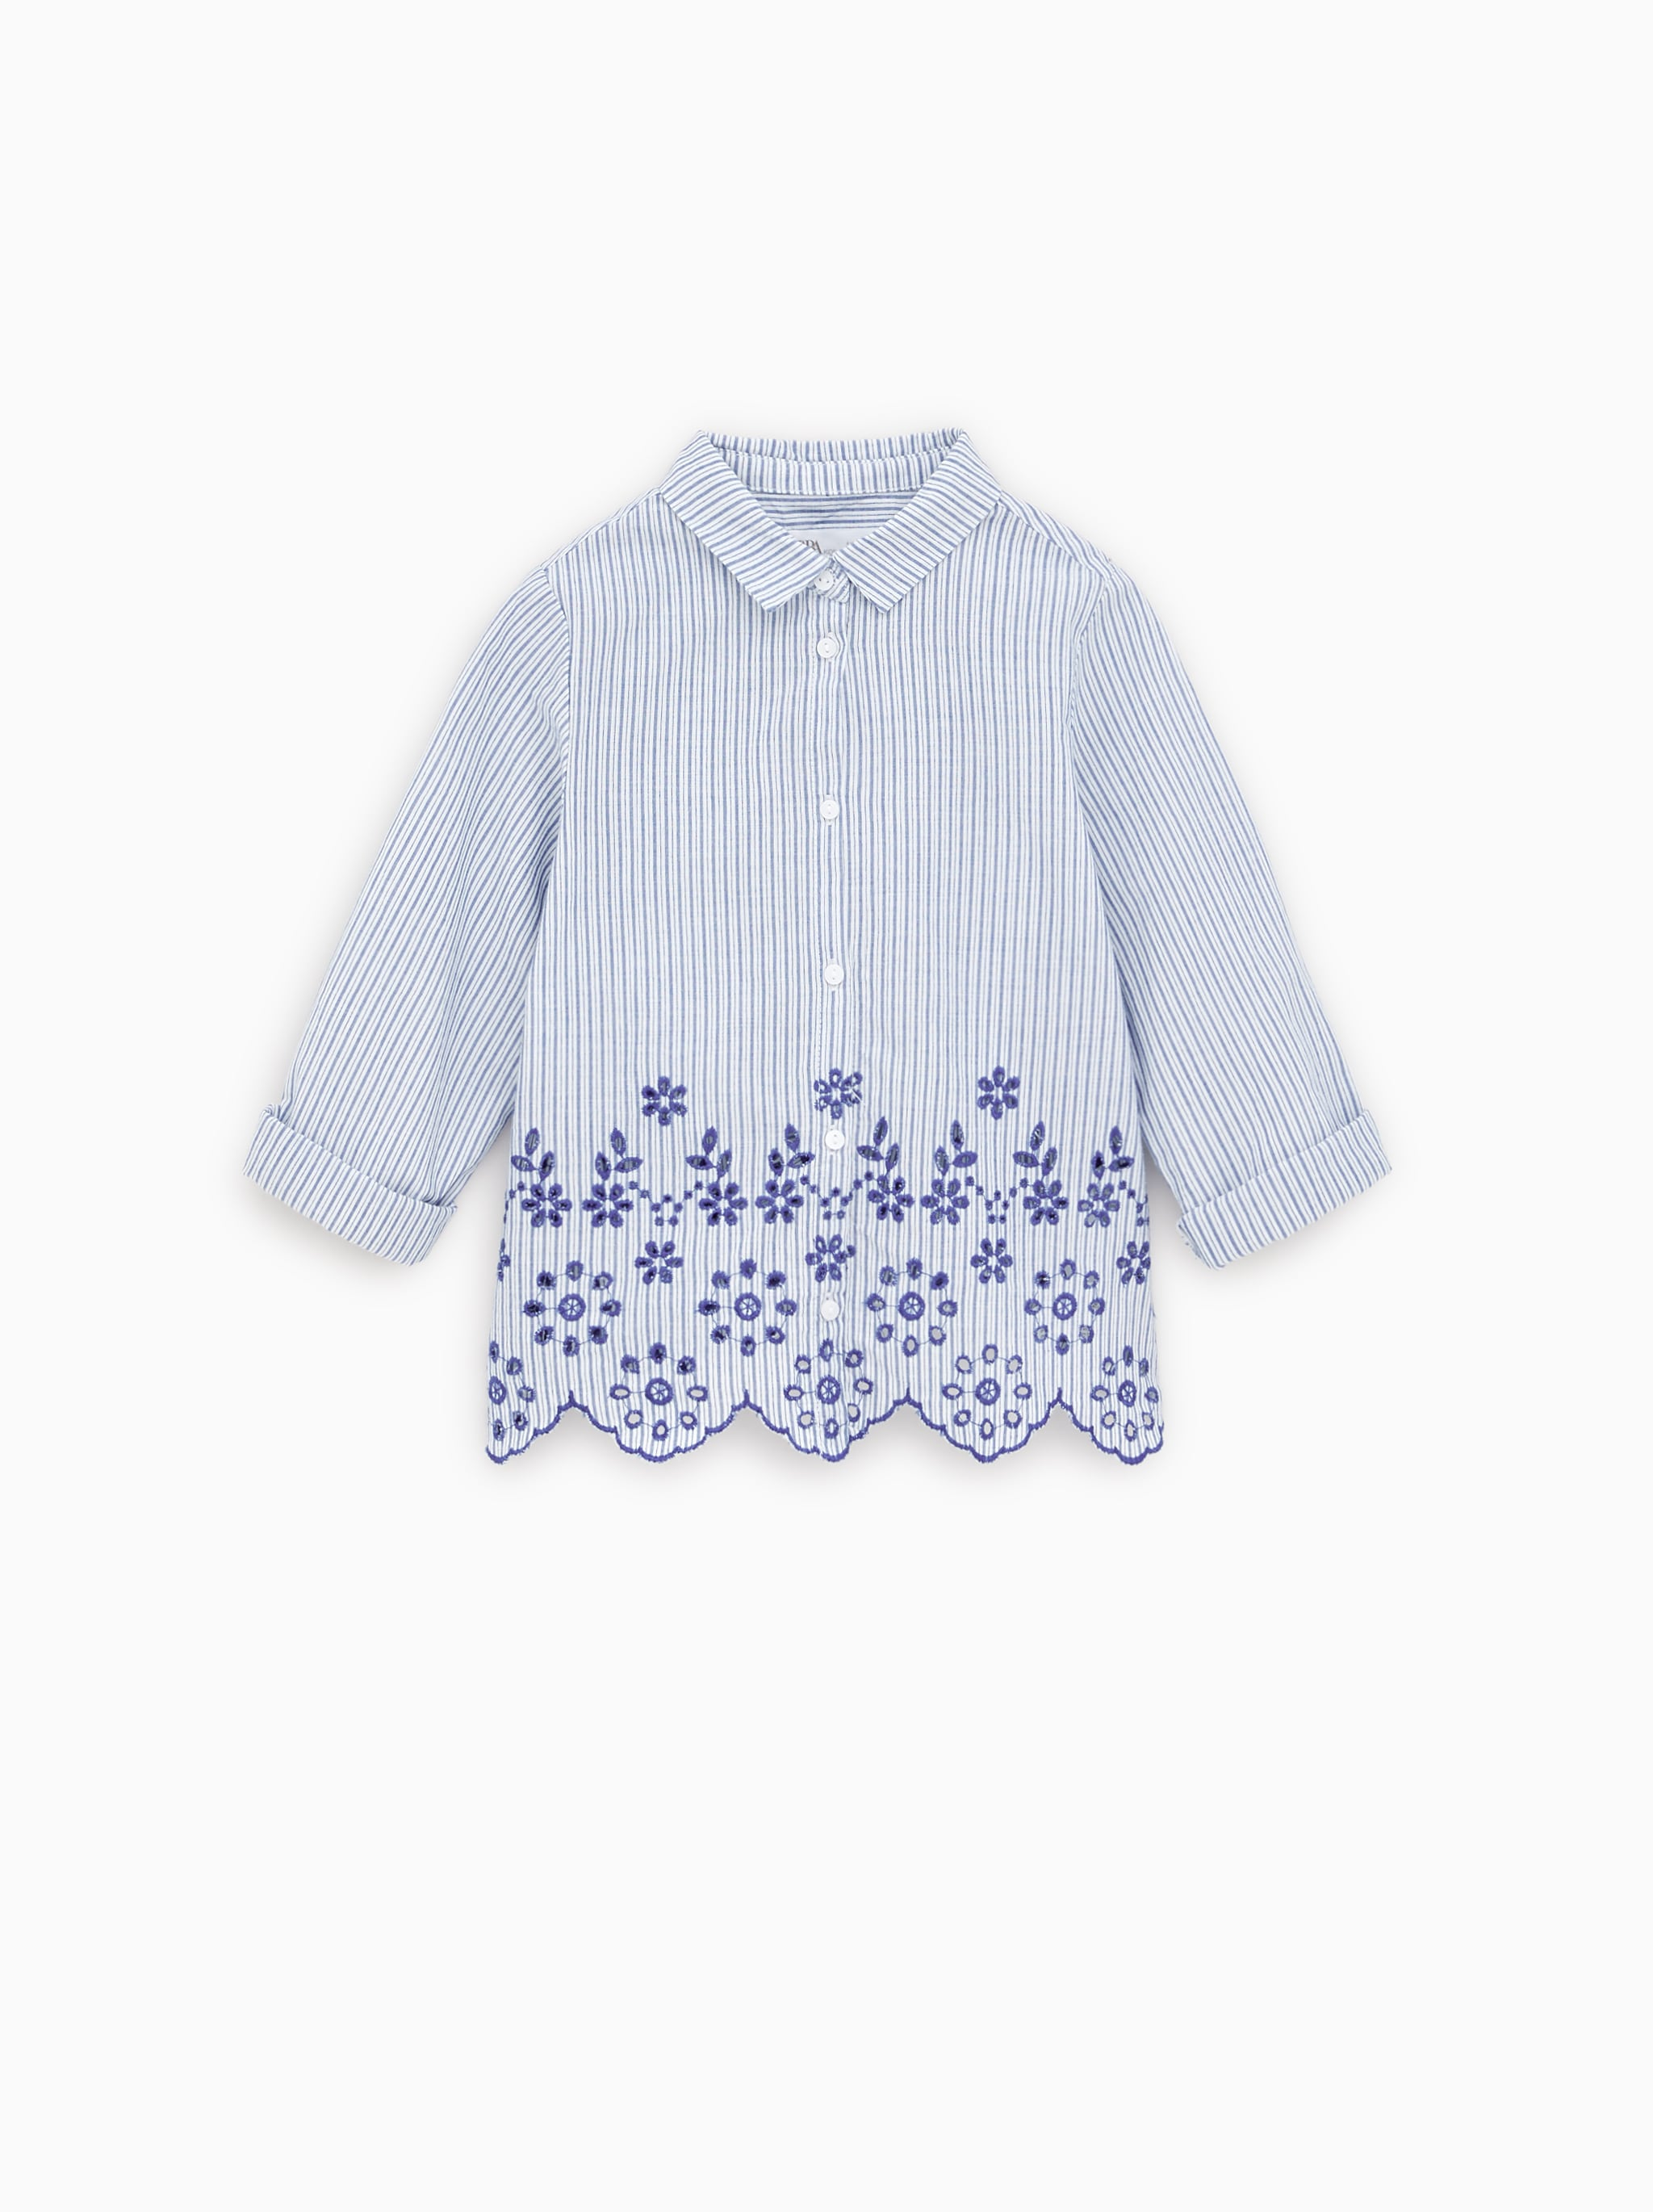 88cad7ac062c Zara BLOUSE WITH SWISS EMBROIDERY